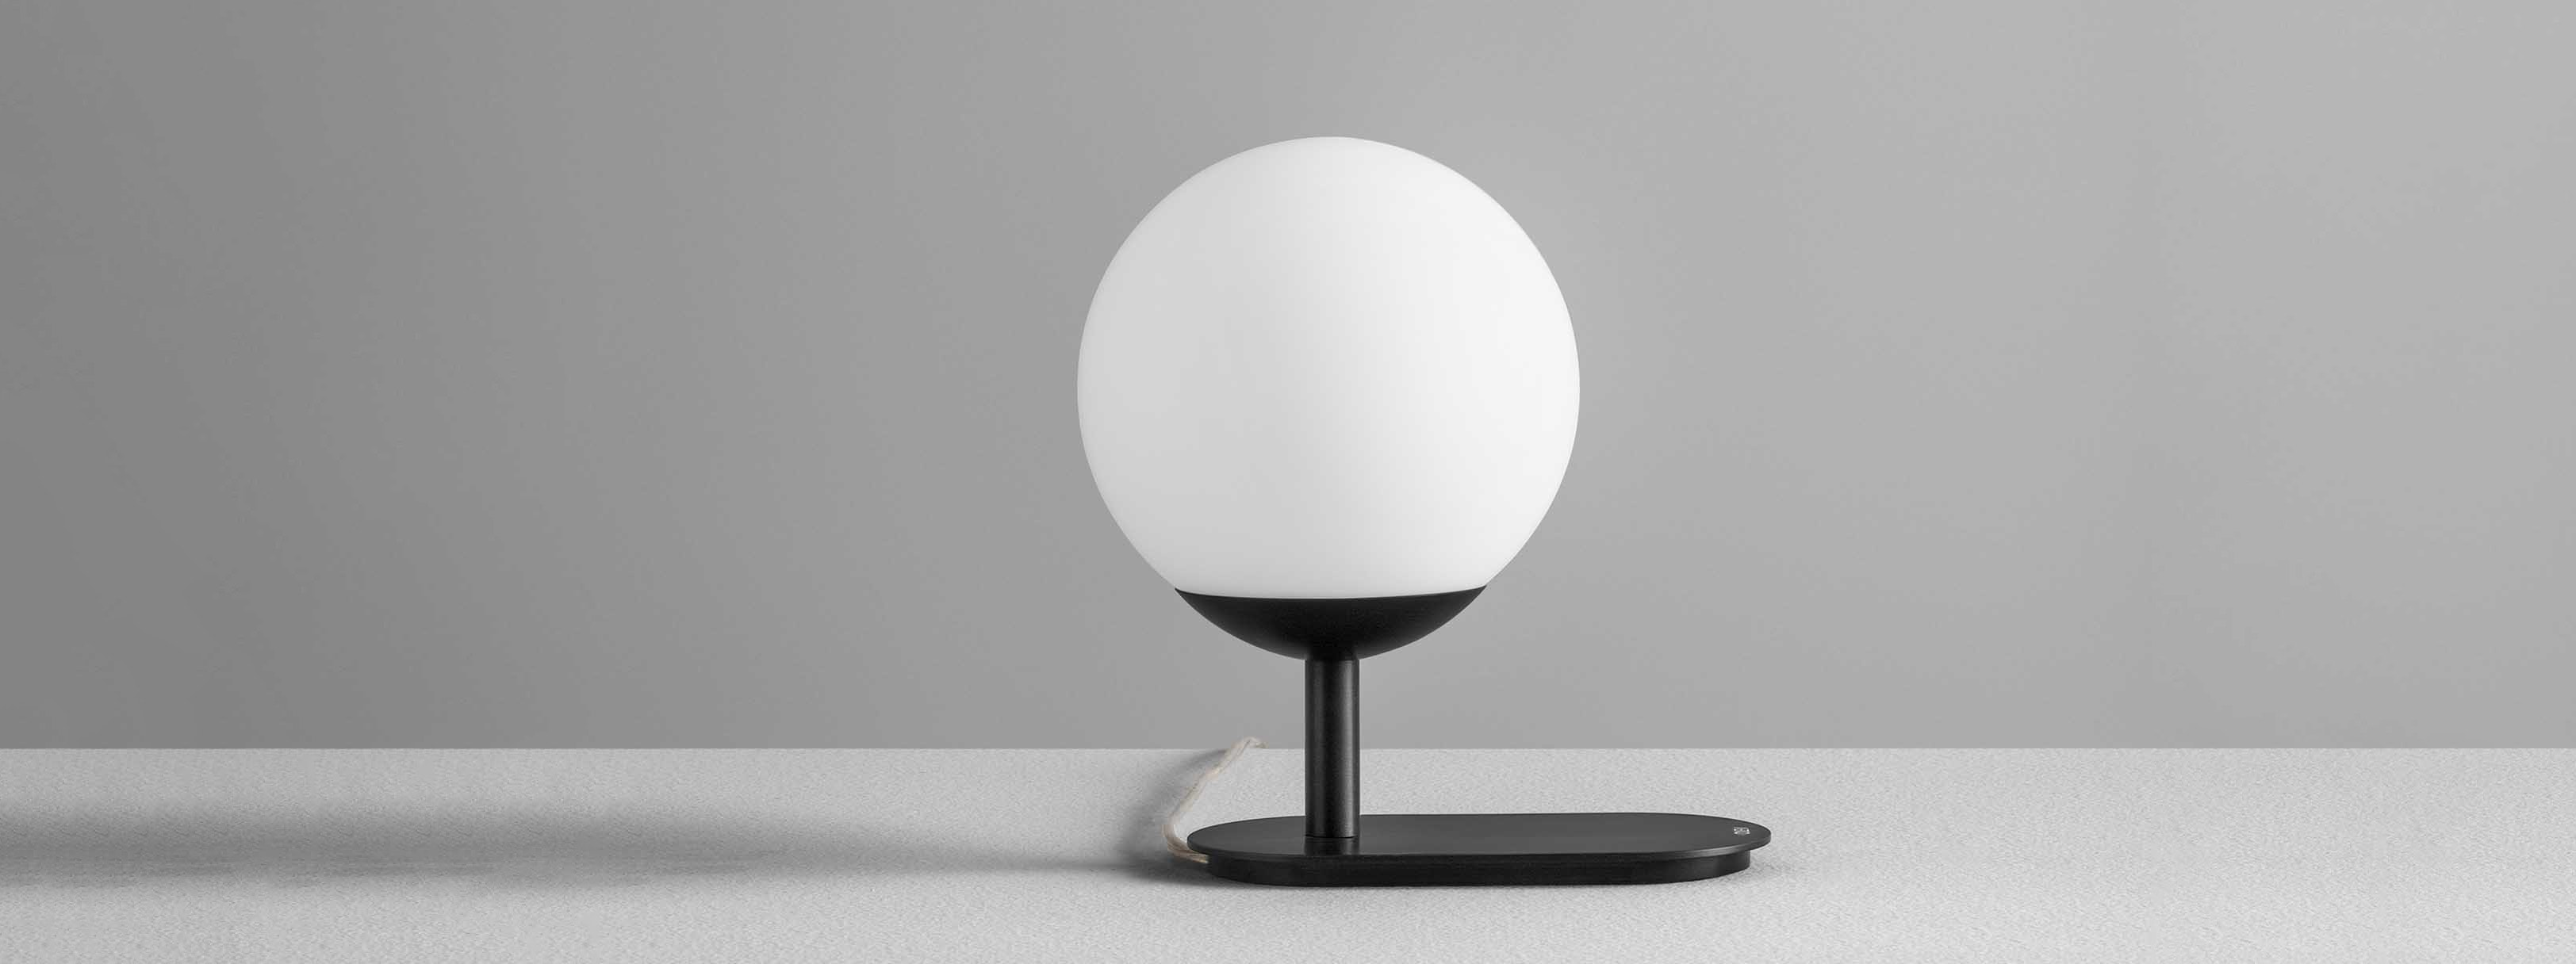 LA_PALLINA (3)_cover_olev_lamp_led_tavolo_table